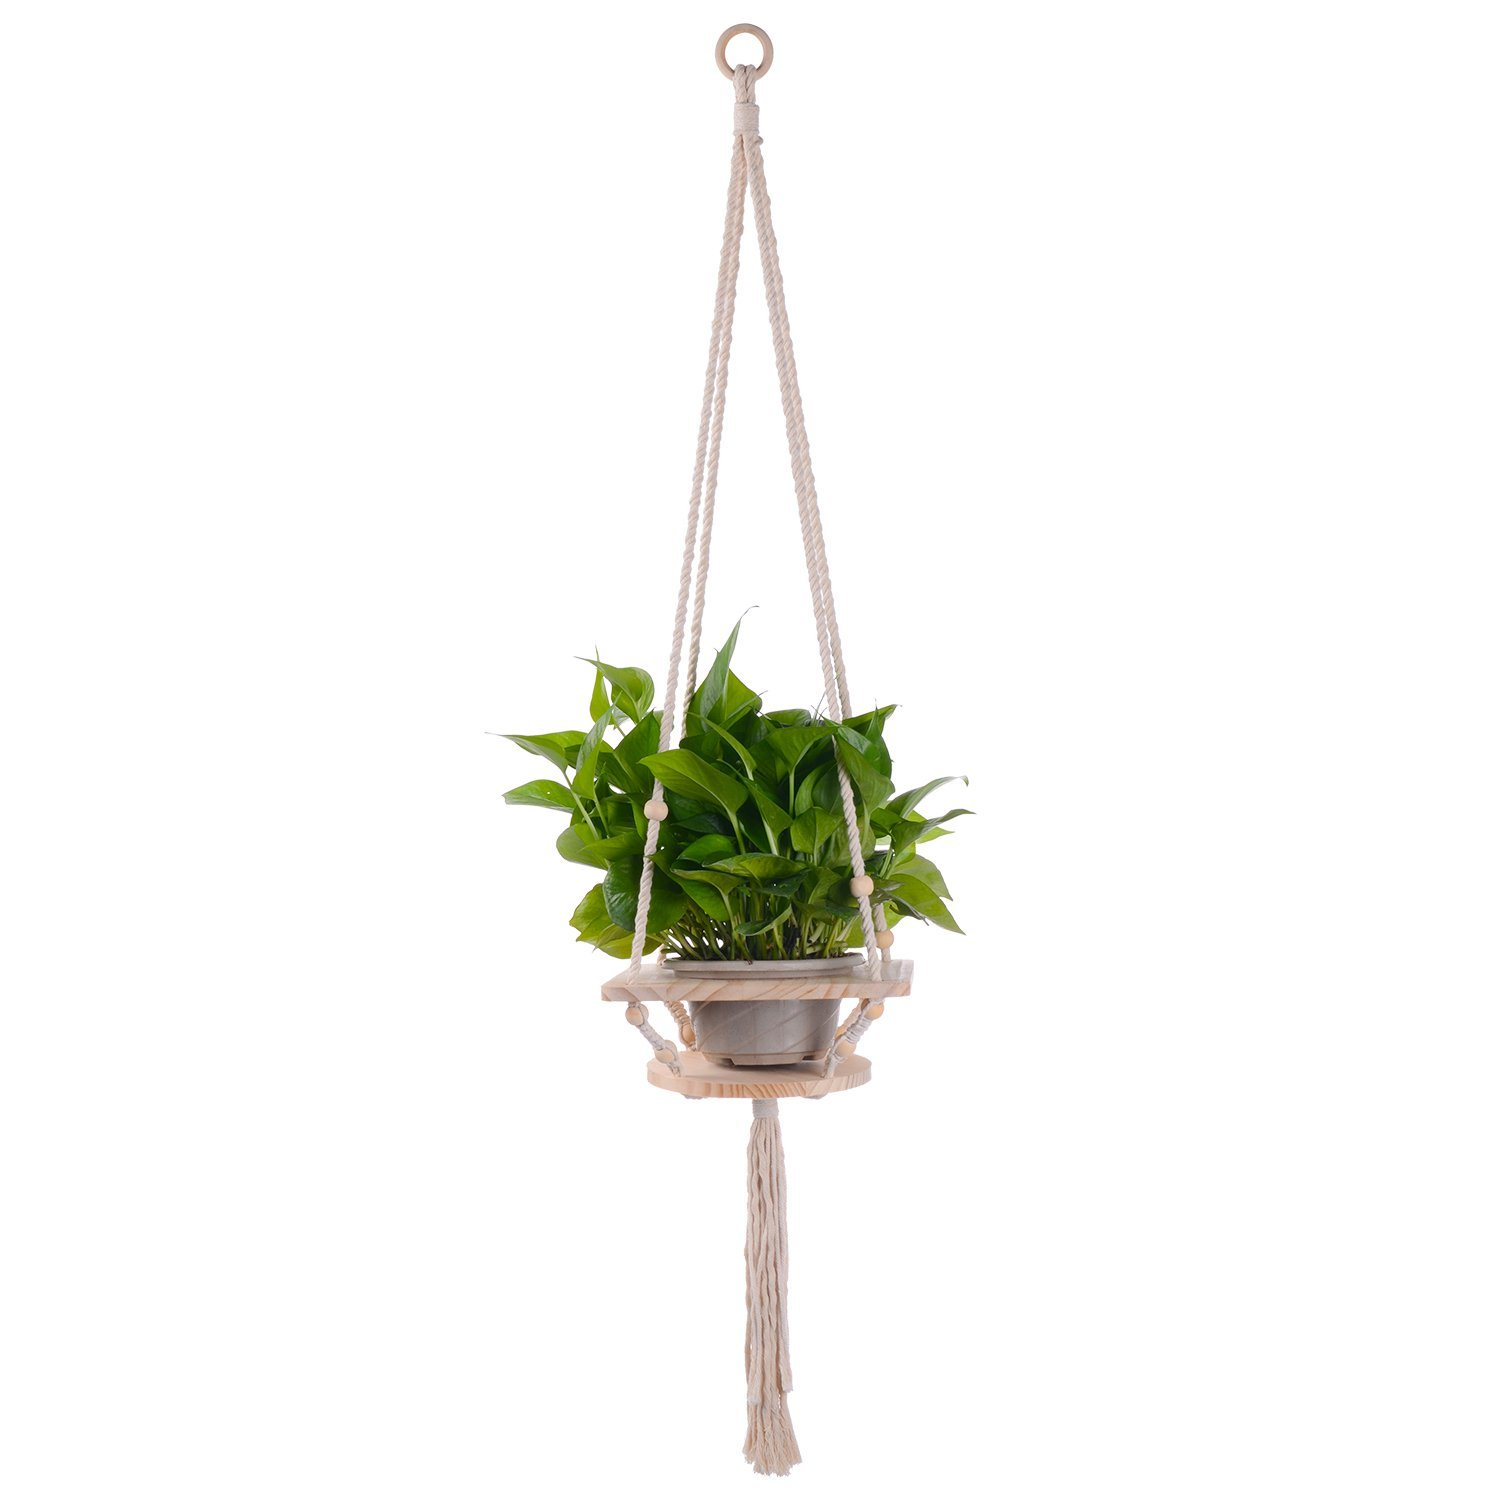 Sonyabecca Macrame Plant Hanger Flower Pot Holder Indoor Outdoor Hanging Planter Shelf Cotton Cord Pine Shelf by Sonyabecca